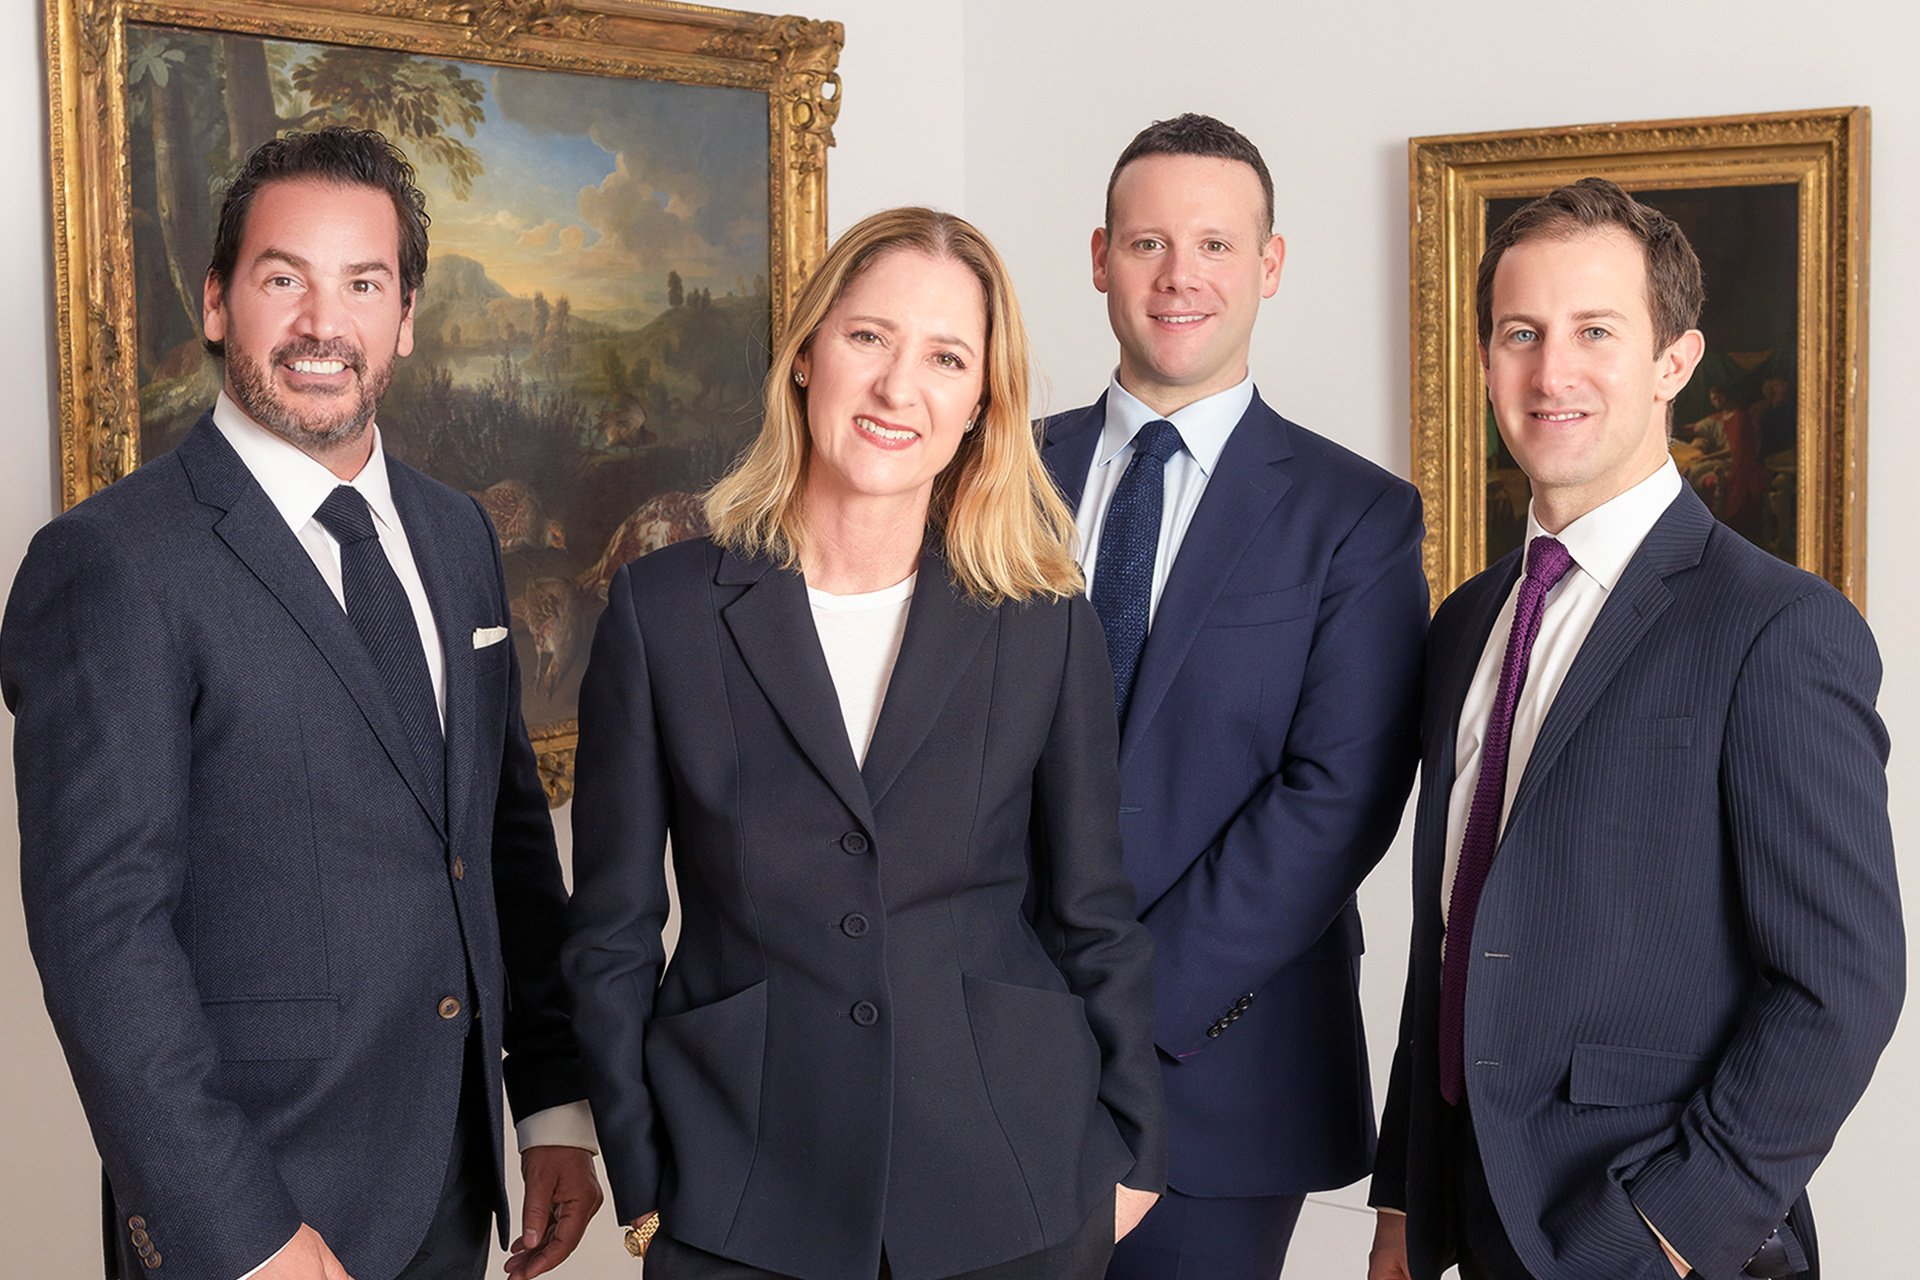 Left to right: Christie's International Real Estate's New York City brokerage agents, Nic Bottero, Erin Boisson Aries, Dustin Crouse, and Adam Zucker